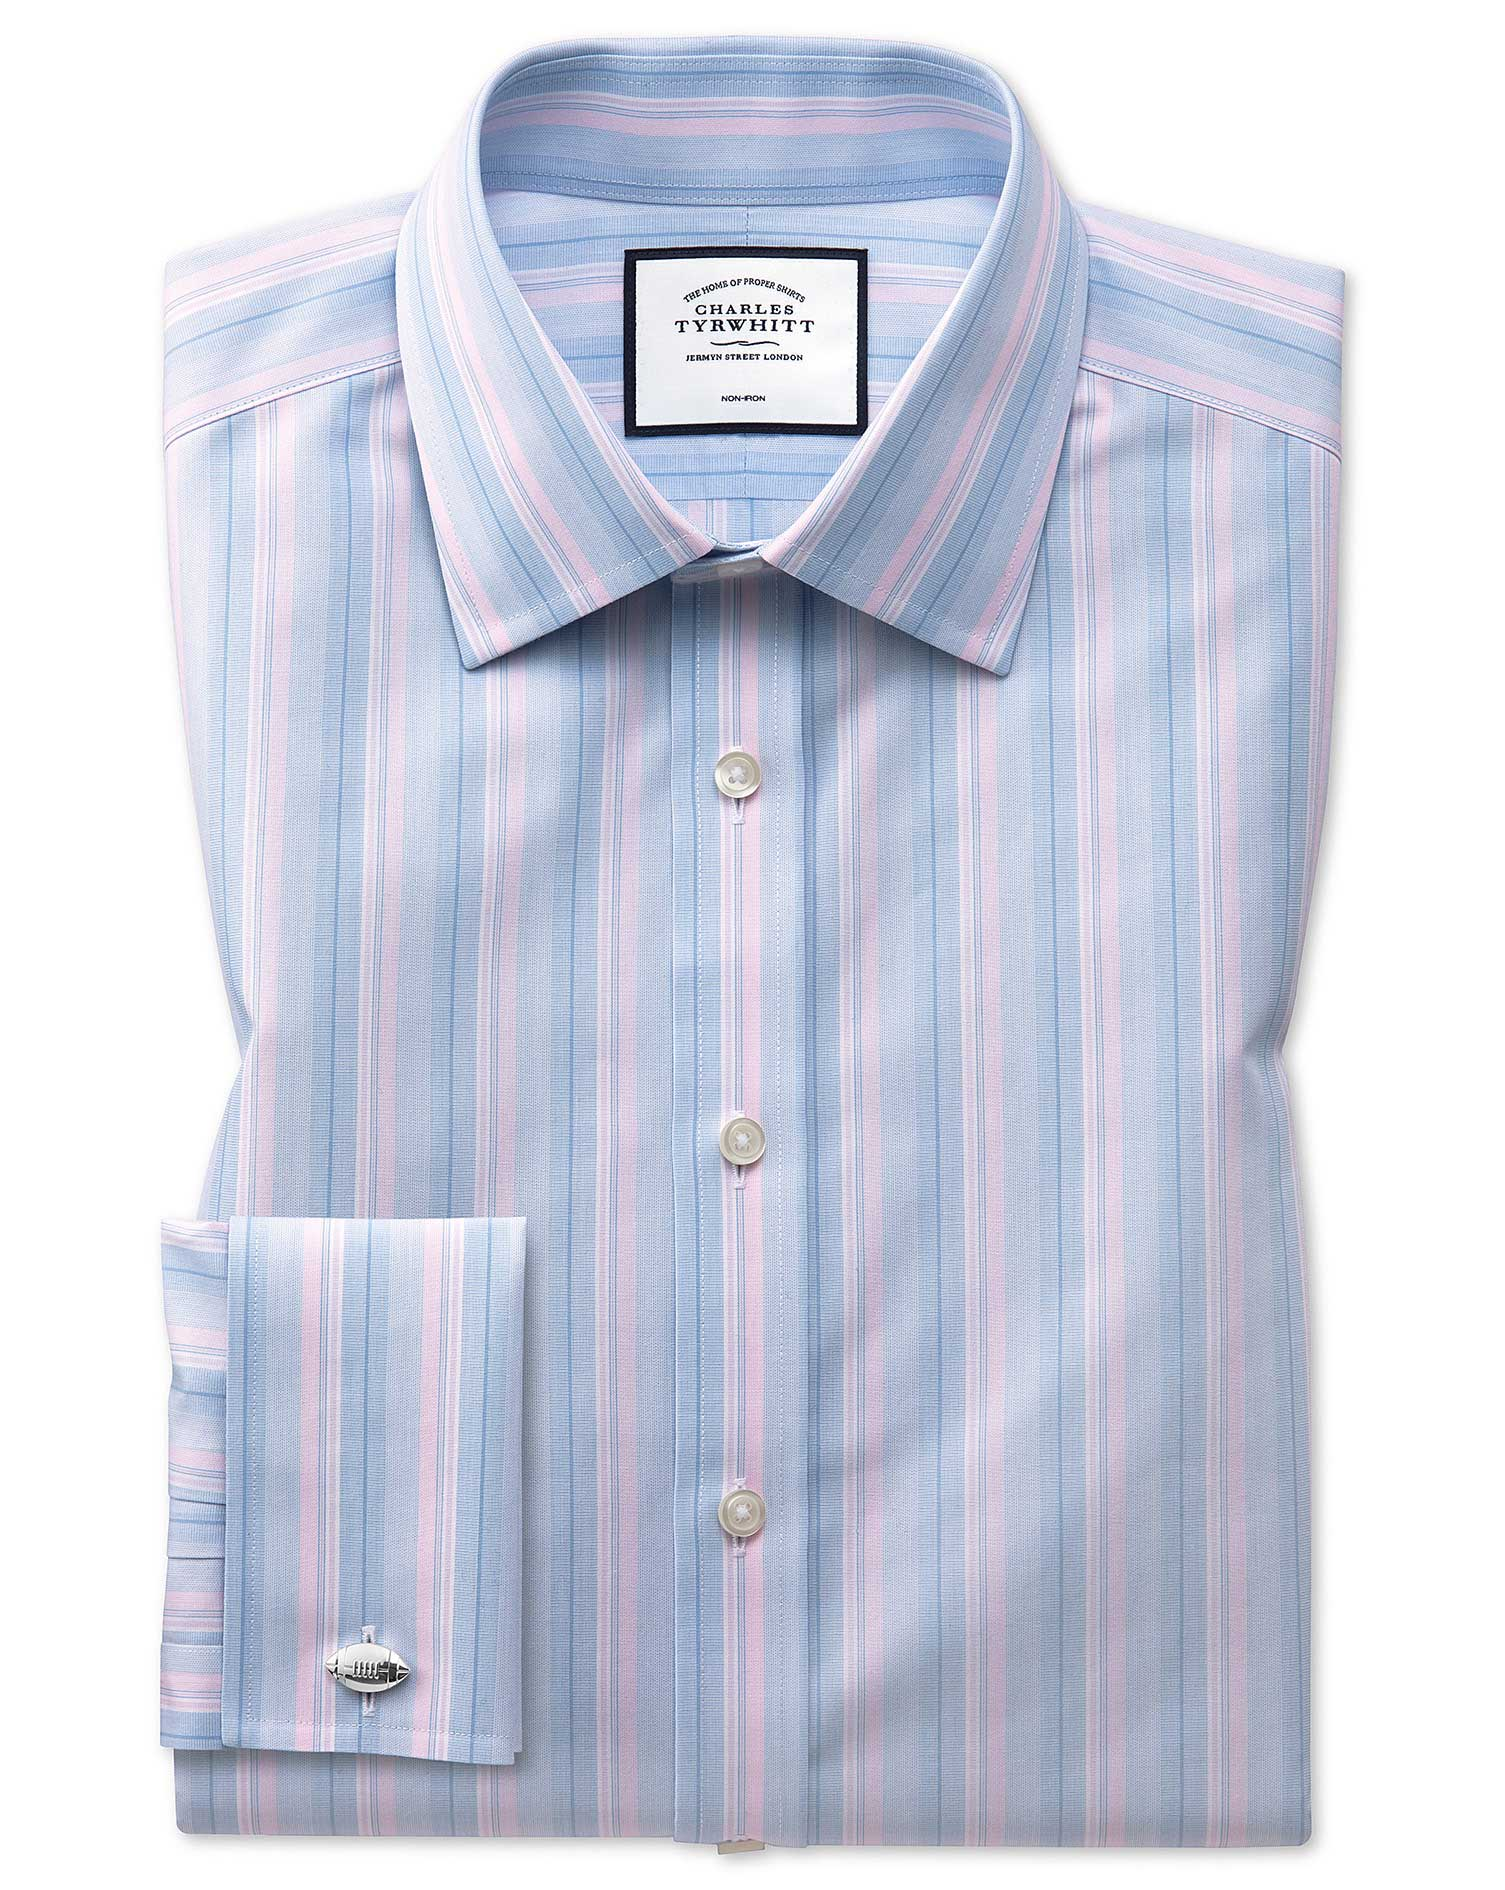 Slim Fit Non-Iron Pink and Blue Multi Stripe Cotton Formal Shirt Double Cuff Size 16.5/35 by Charles